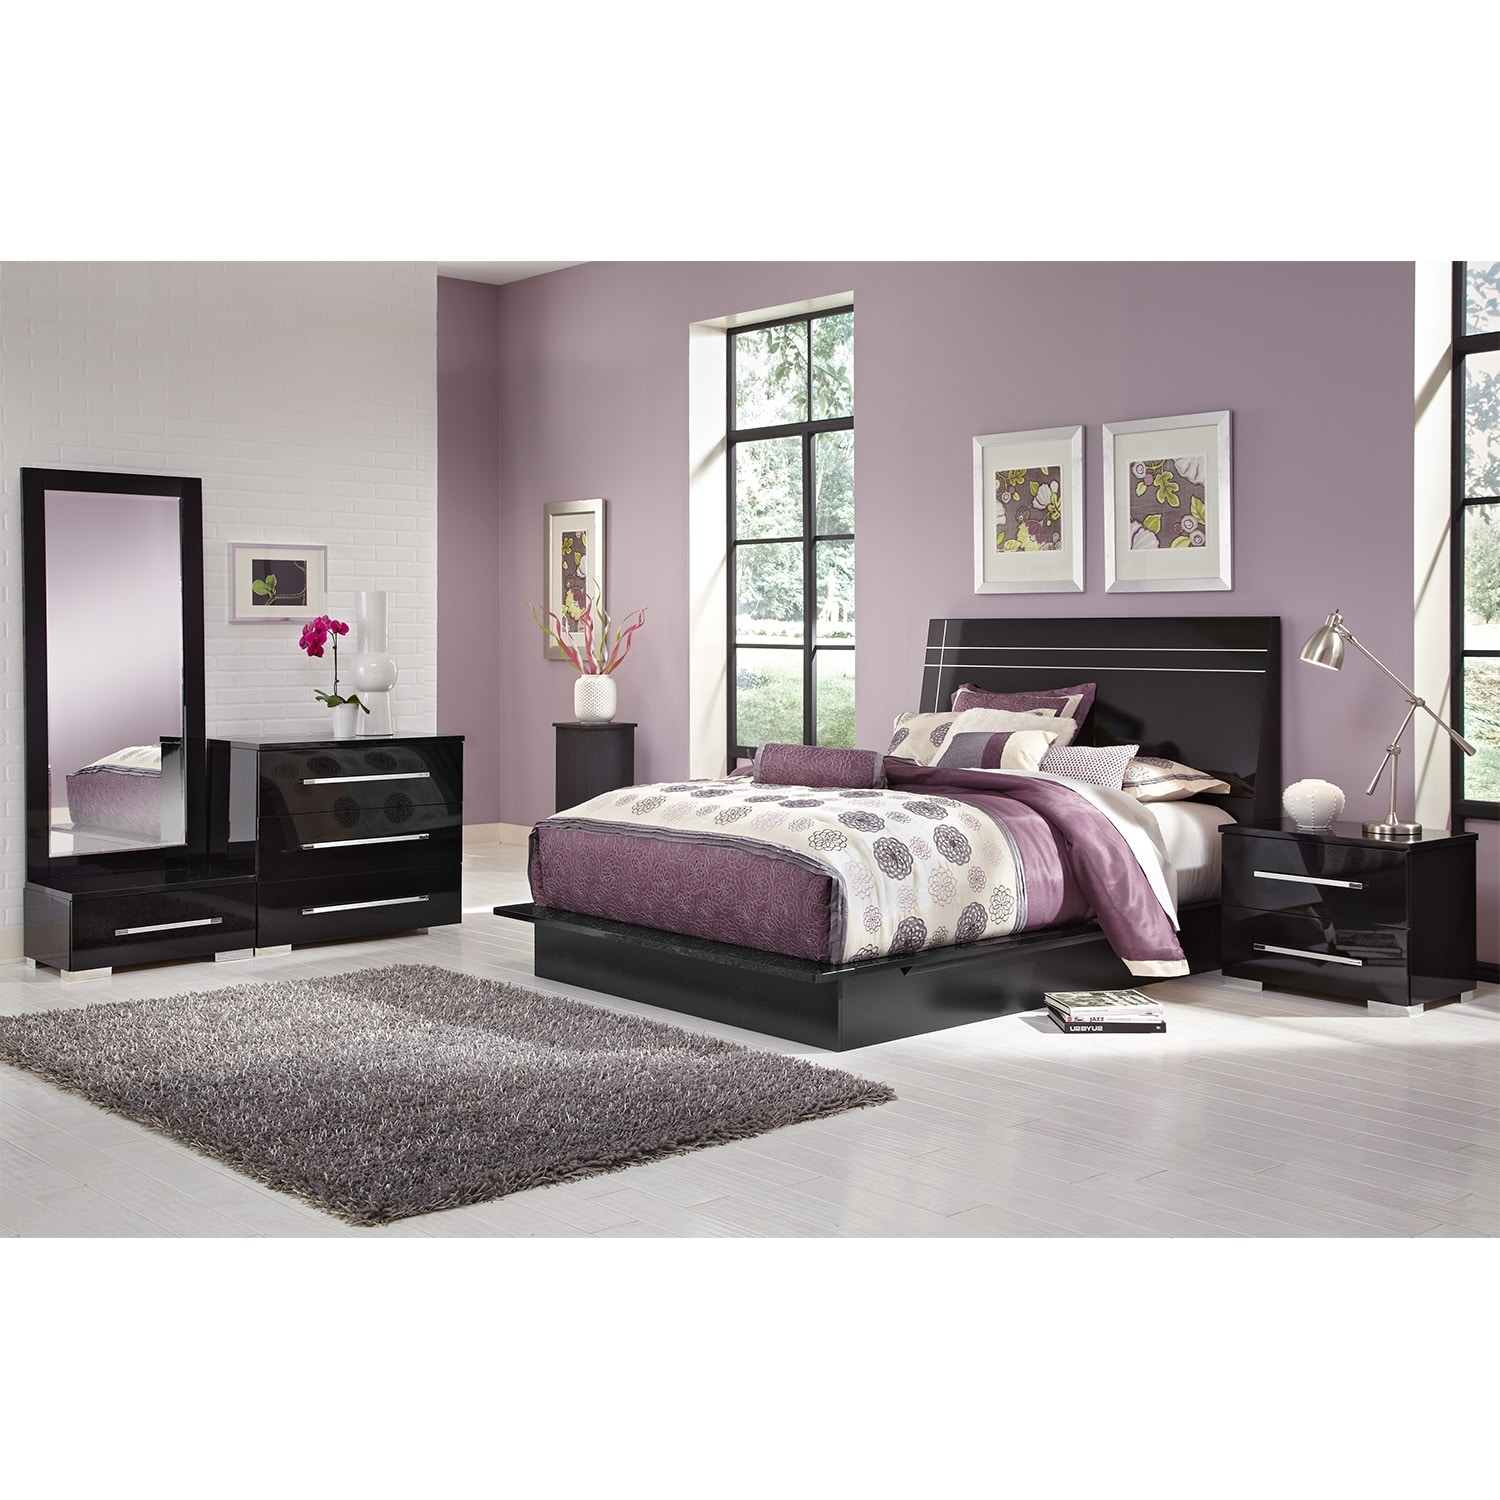 dimora bedroom set dimora 6 king panel bedroom set black value city 11428